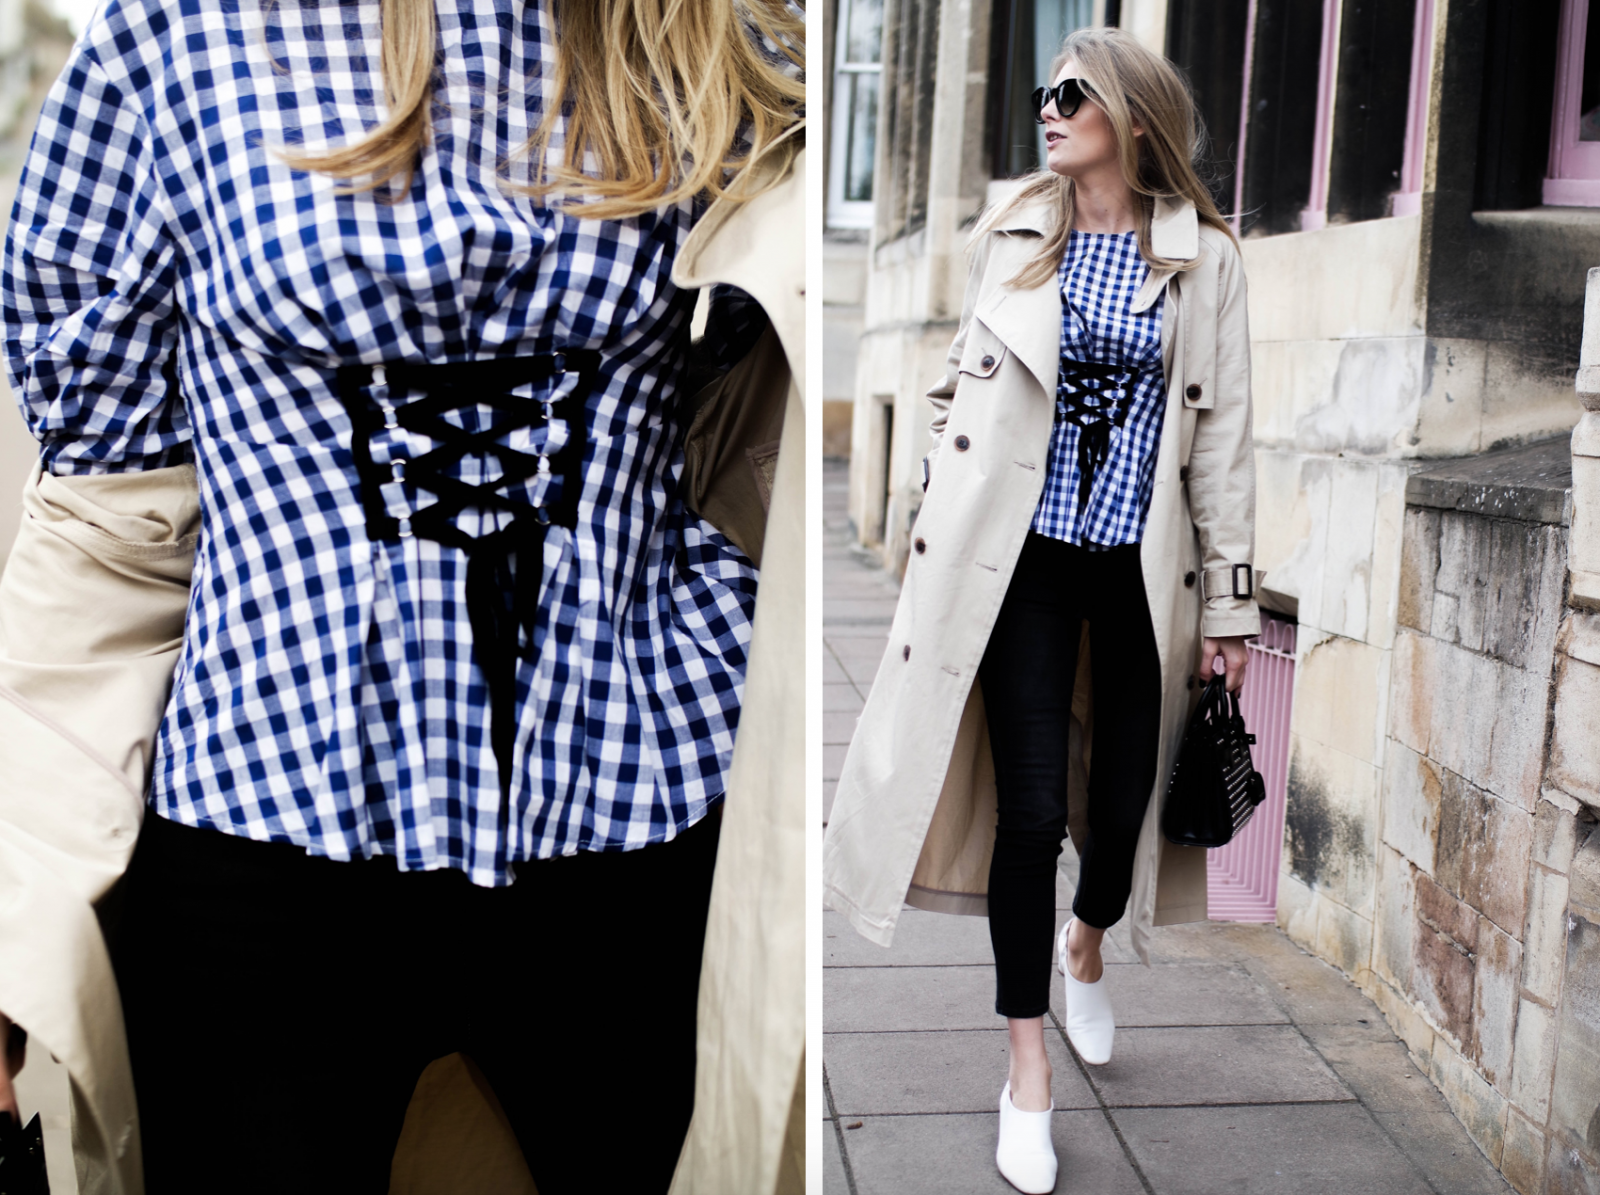 5 Ways To Wear The Corset Trend - Spring Style Inspiration